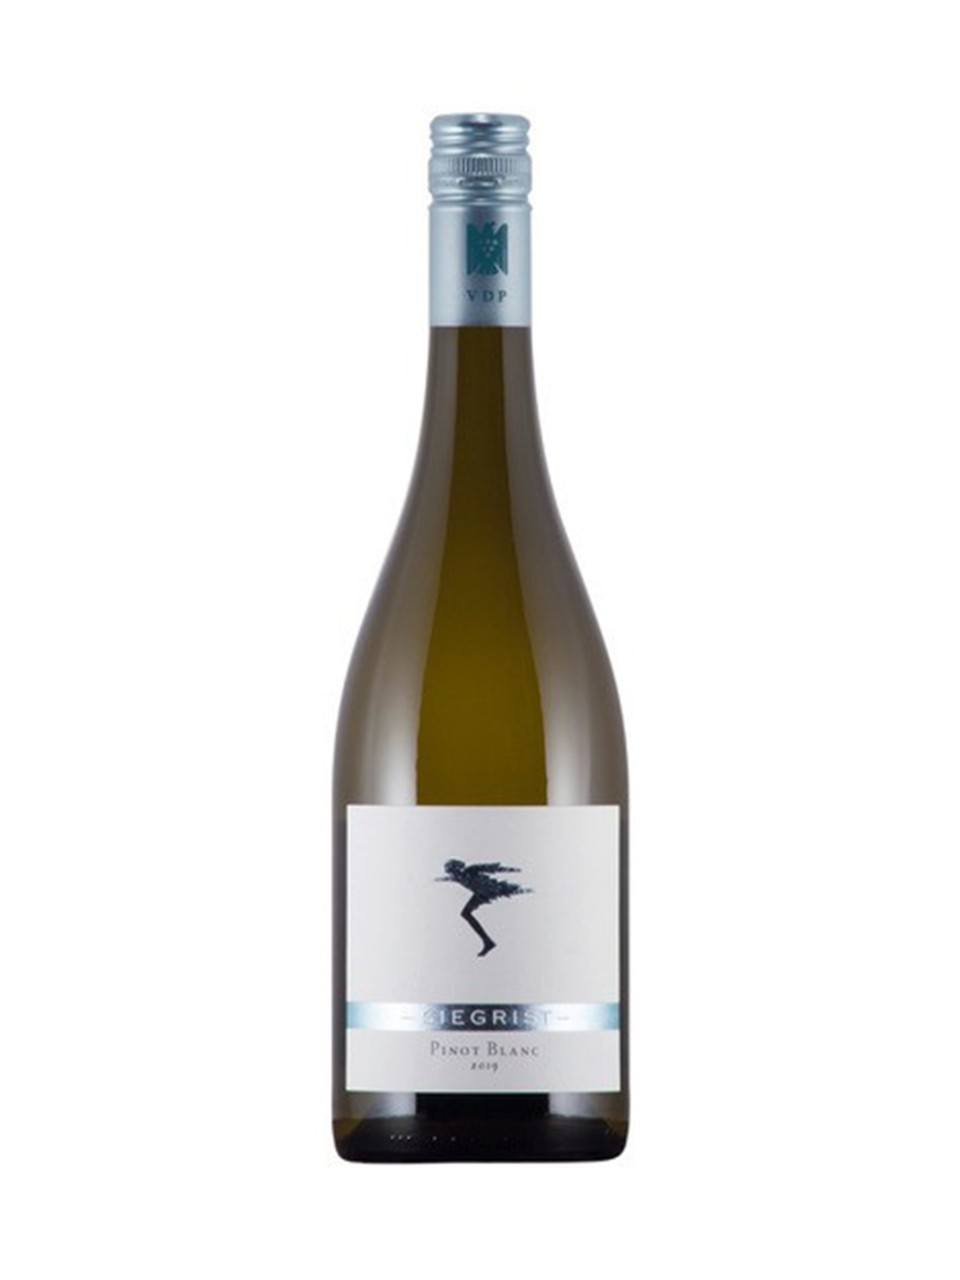 Siegrist Pinot Blanc VDP Gutswein 2019 from LCBO